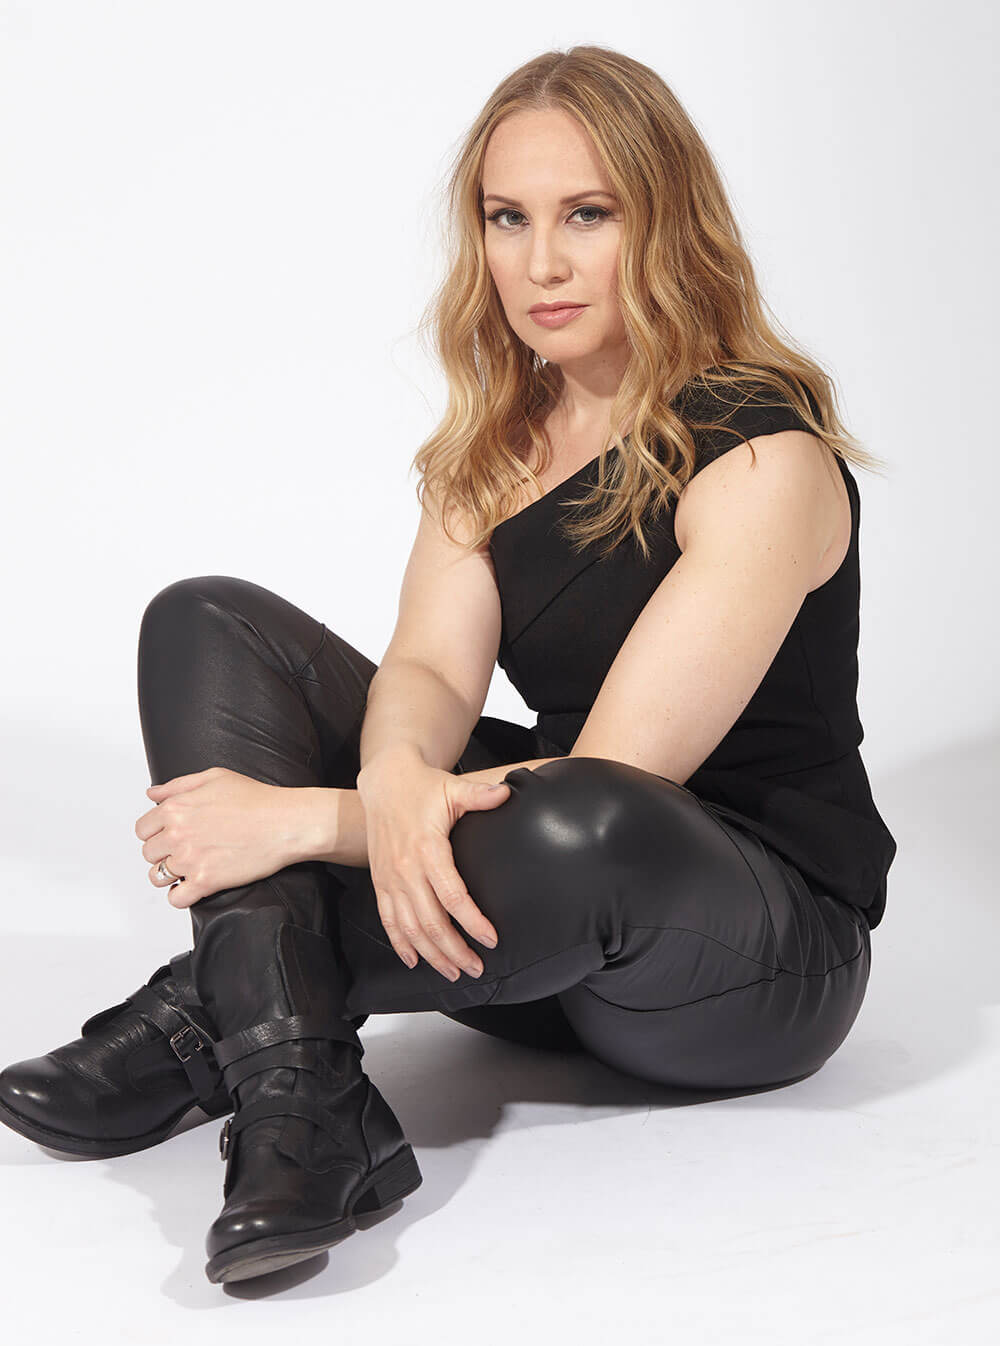 Chillin' with Kelly Karbacz, all black tank and leather pants, sitting